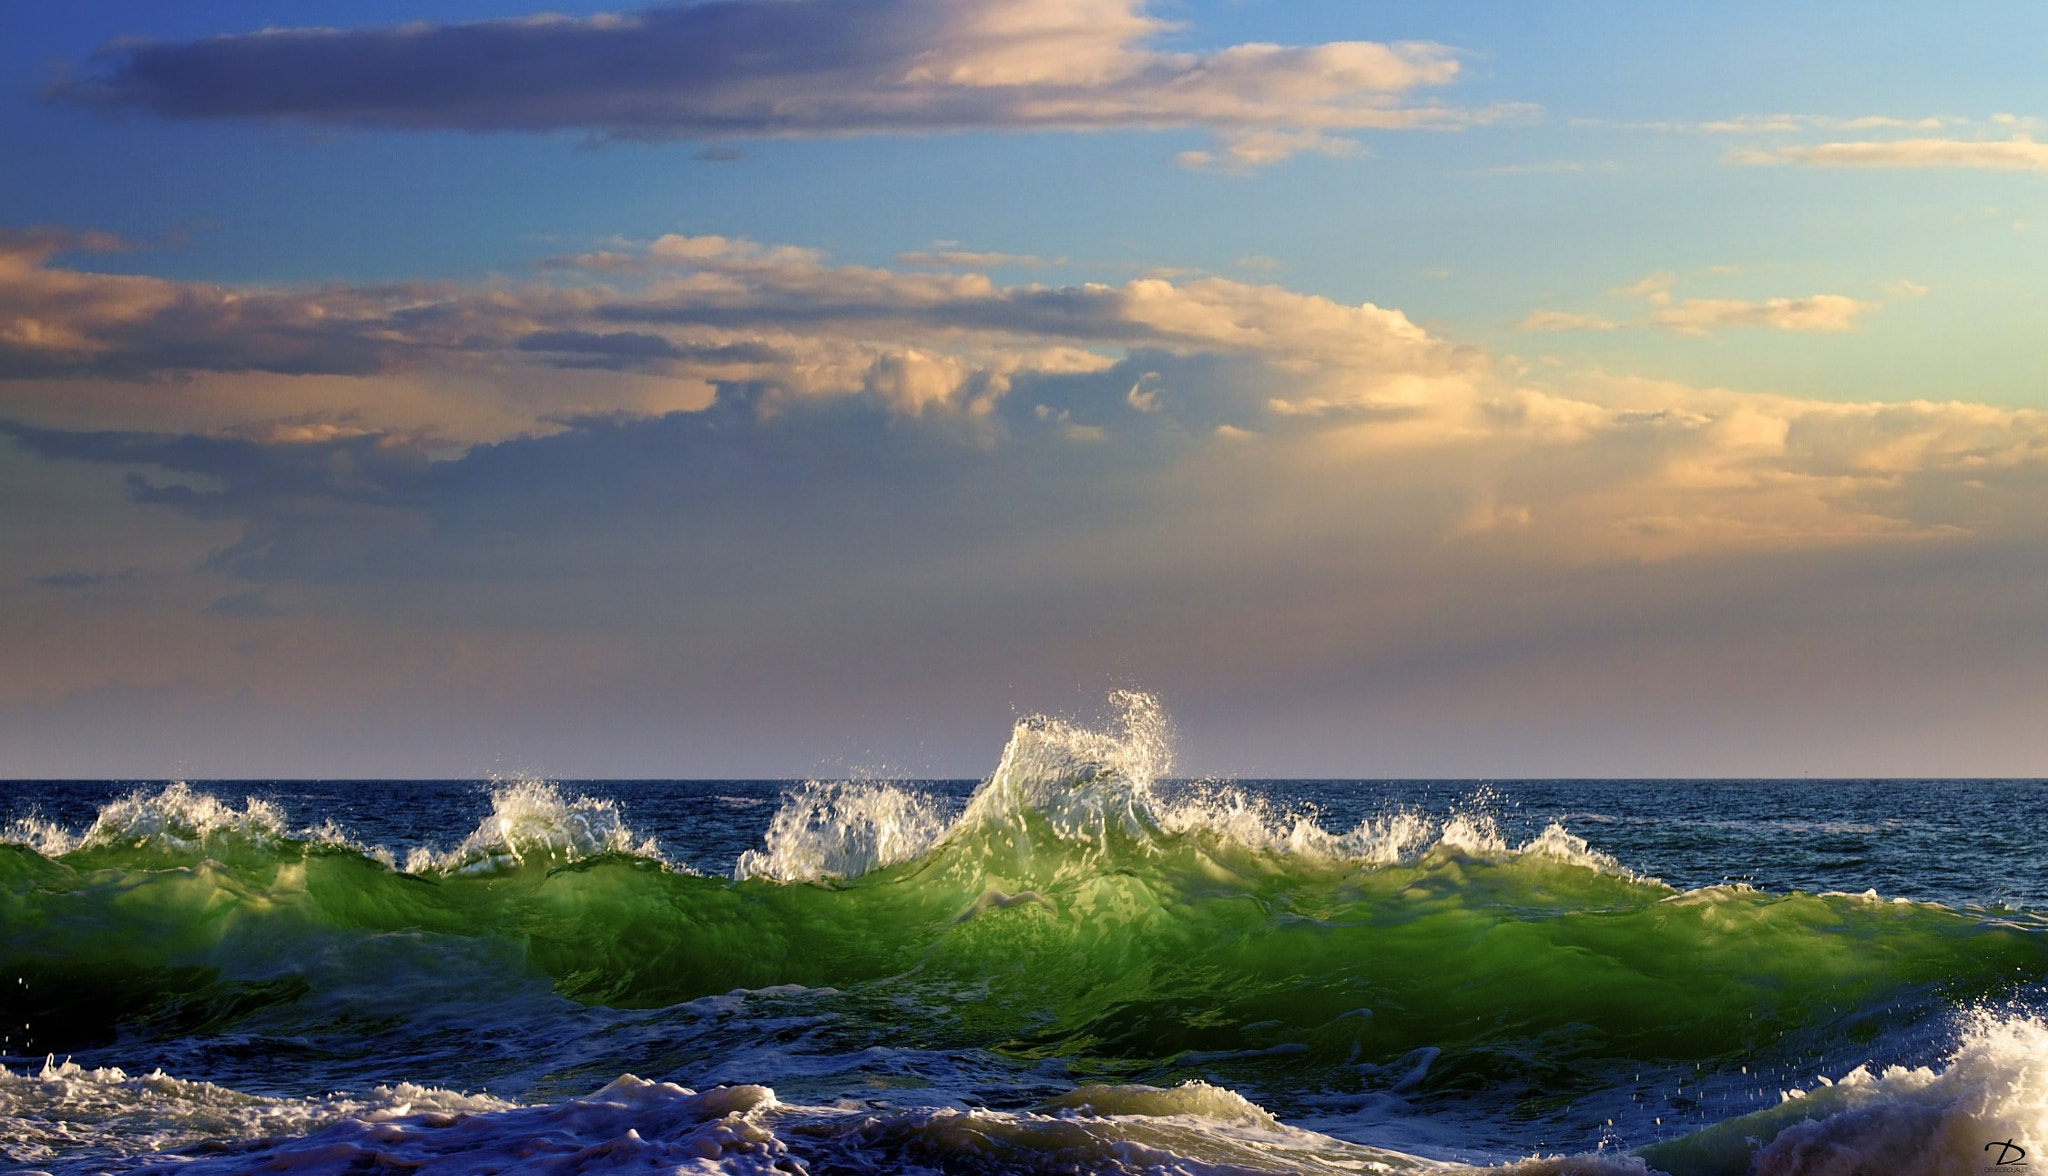 Photograph La vague verte by Denis Drouault on 500px